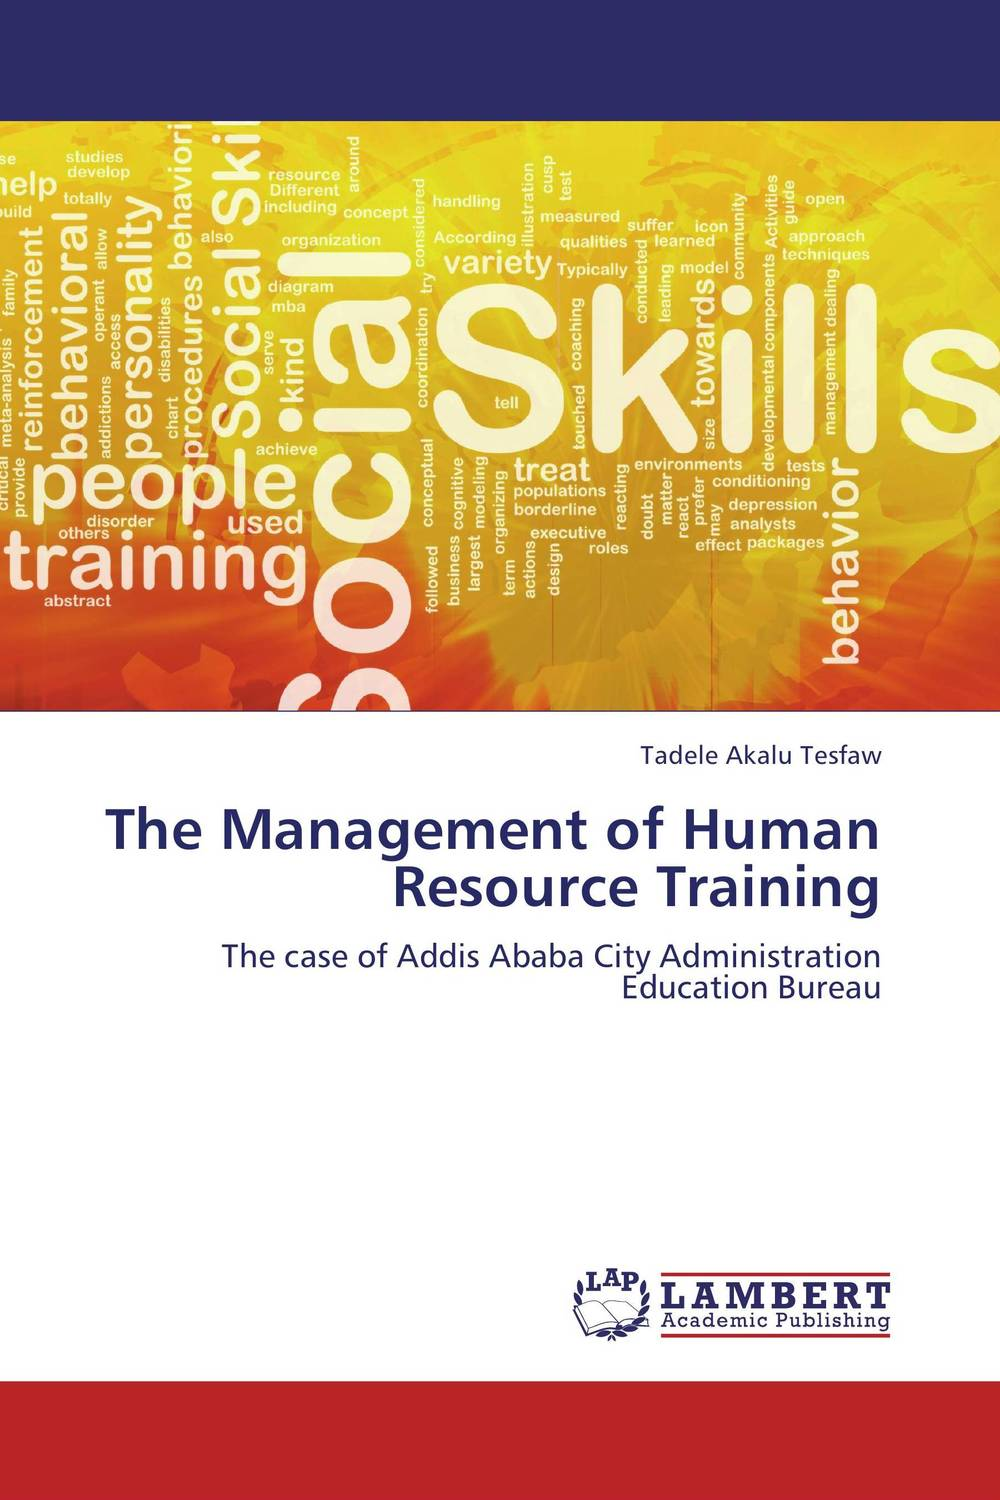 The Management of Human Resource Training jill anne o sullivan validating academic training versus industry training using erp